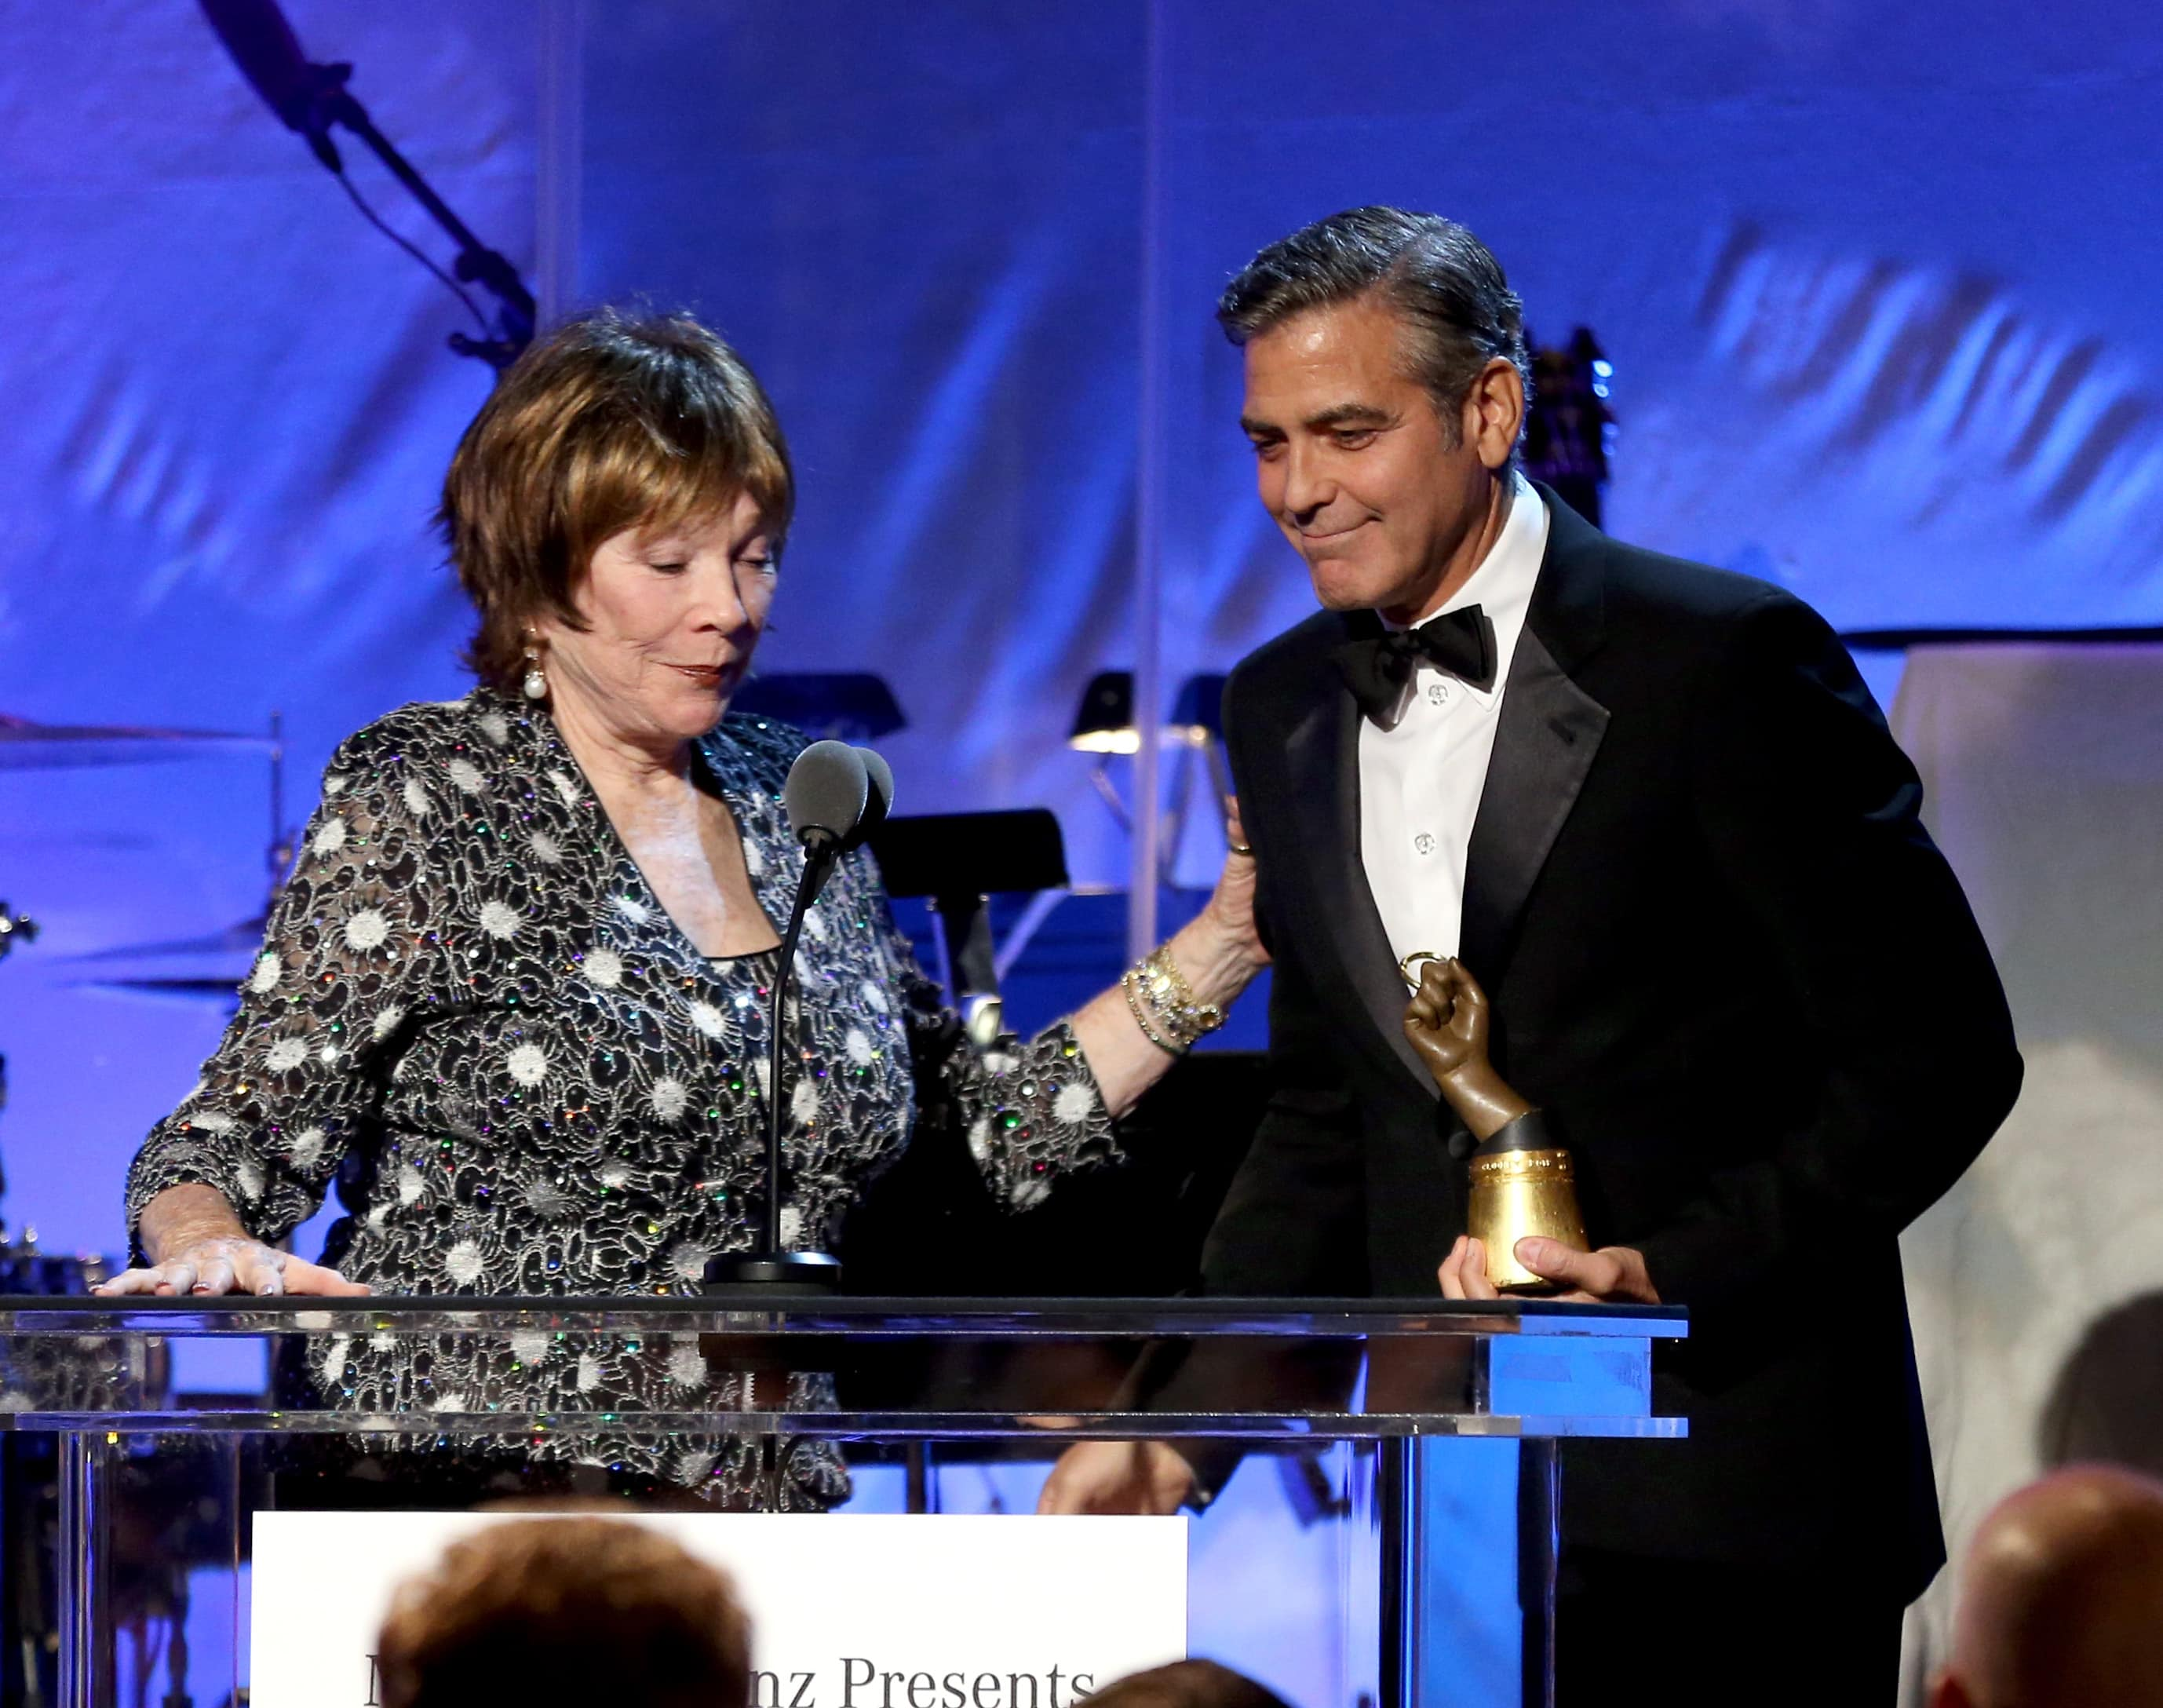 Actress Shirley MacLaine presents the Brass Ring Award to actor/honoree George Clooney onstage during the 26th Anniversary Carousel Of Hope Ball presented by Mercedes-Benz at The Beverly Hilton Hotel on October 20, 2012, in Beverly Hills, California. (Photo by Christopher Polk/Getty Images)